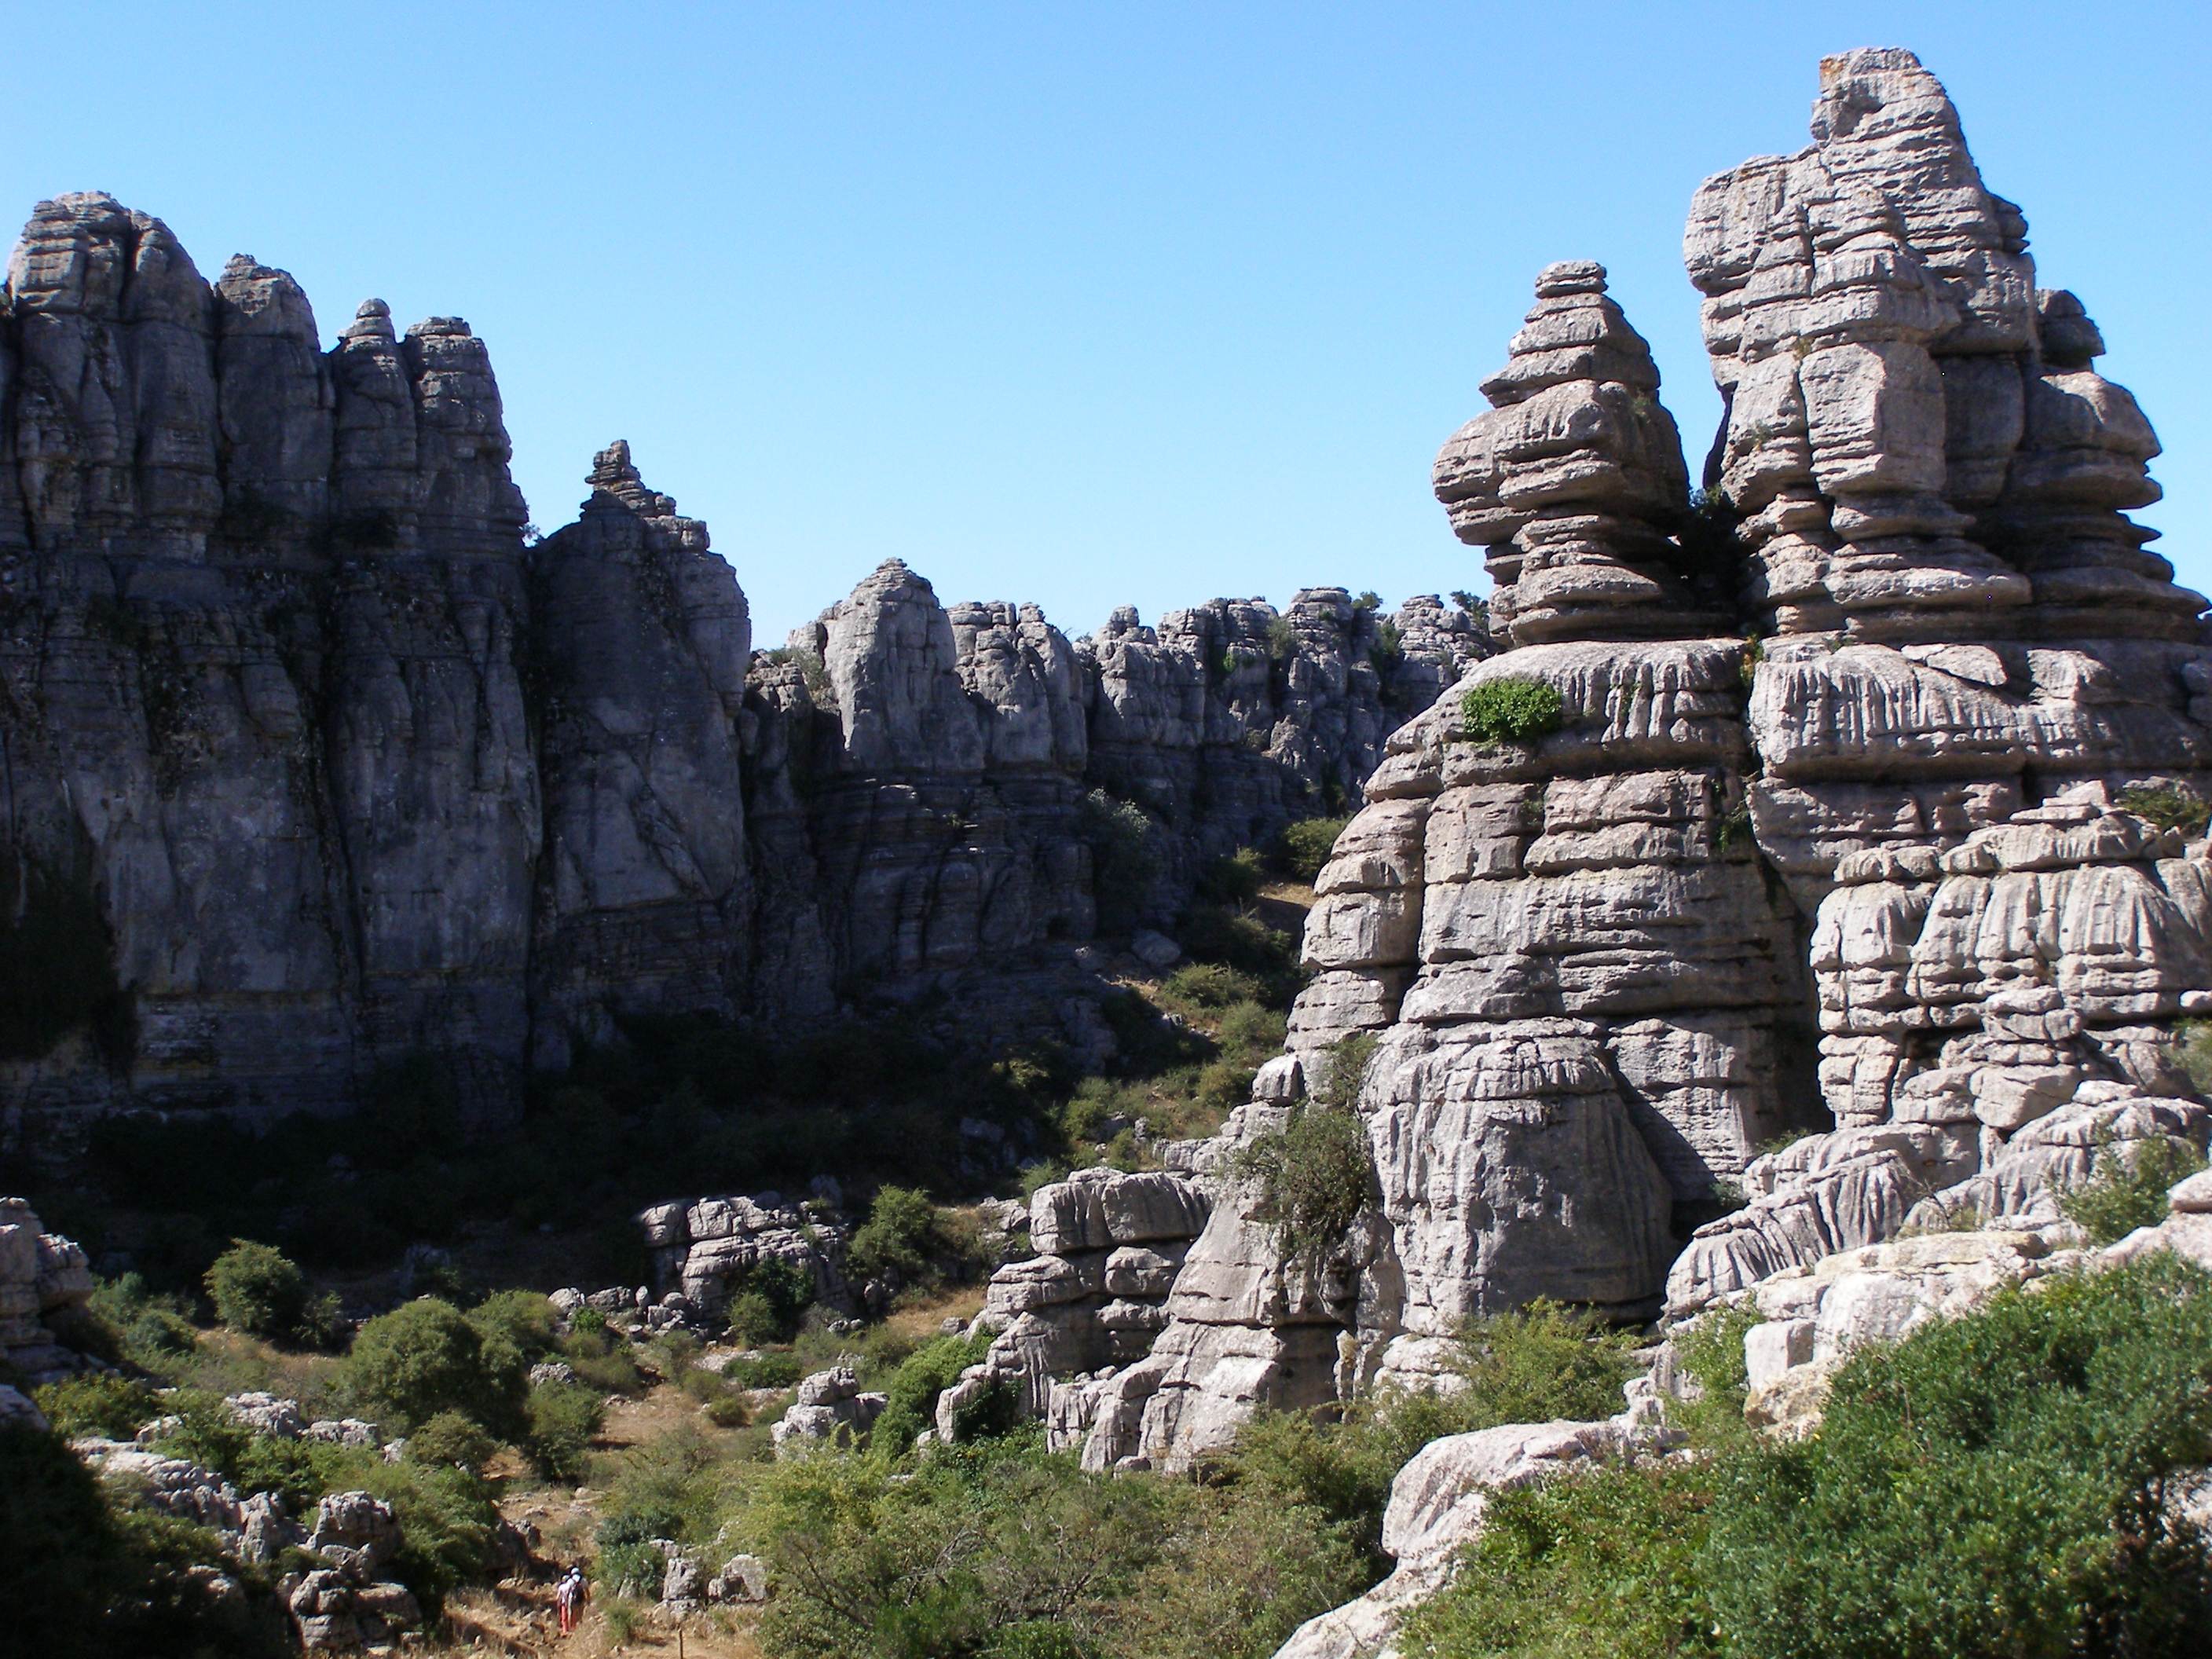 The Torcal de Antequera Natural Park